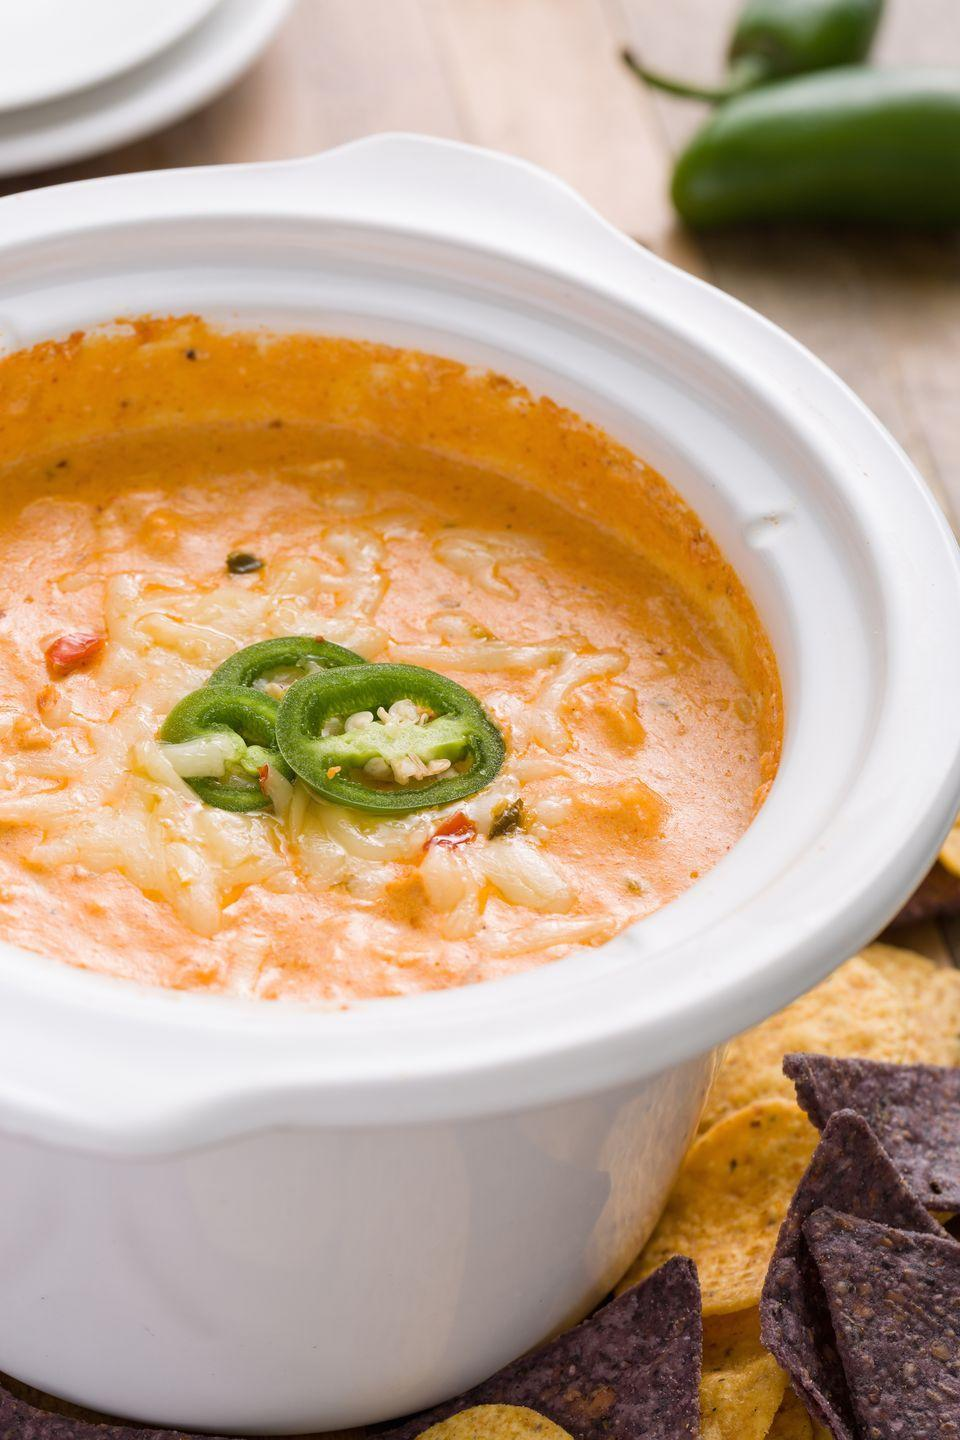 """<p>Enchilada sauce and pepper jack shine in this gloriously cheesy dip.</p><p>Get the recipe from <a href=""""https://www.delish.com/cooking/recipe-ideas/recipes/a44668/slow-cooker-chicken-enchilada-dip-recipe/"""" rel=""""nofollow noopener"""" target=""""_blank"""" data-ylk=""""slk:Delish"""" class=""""link rapid-noclick-resp"""">Delish</a>. </p>"""